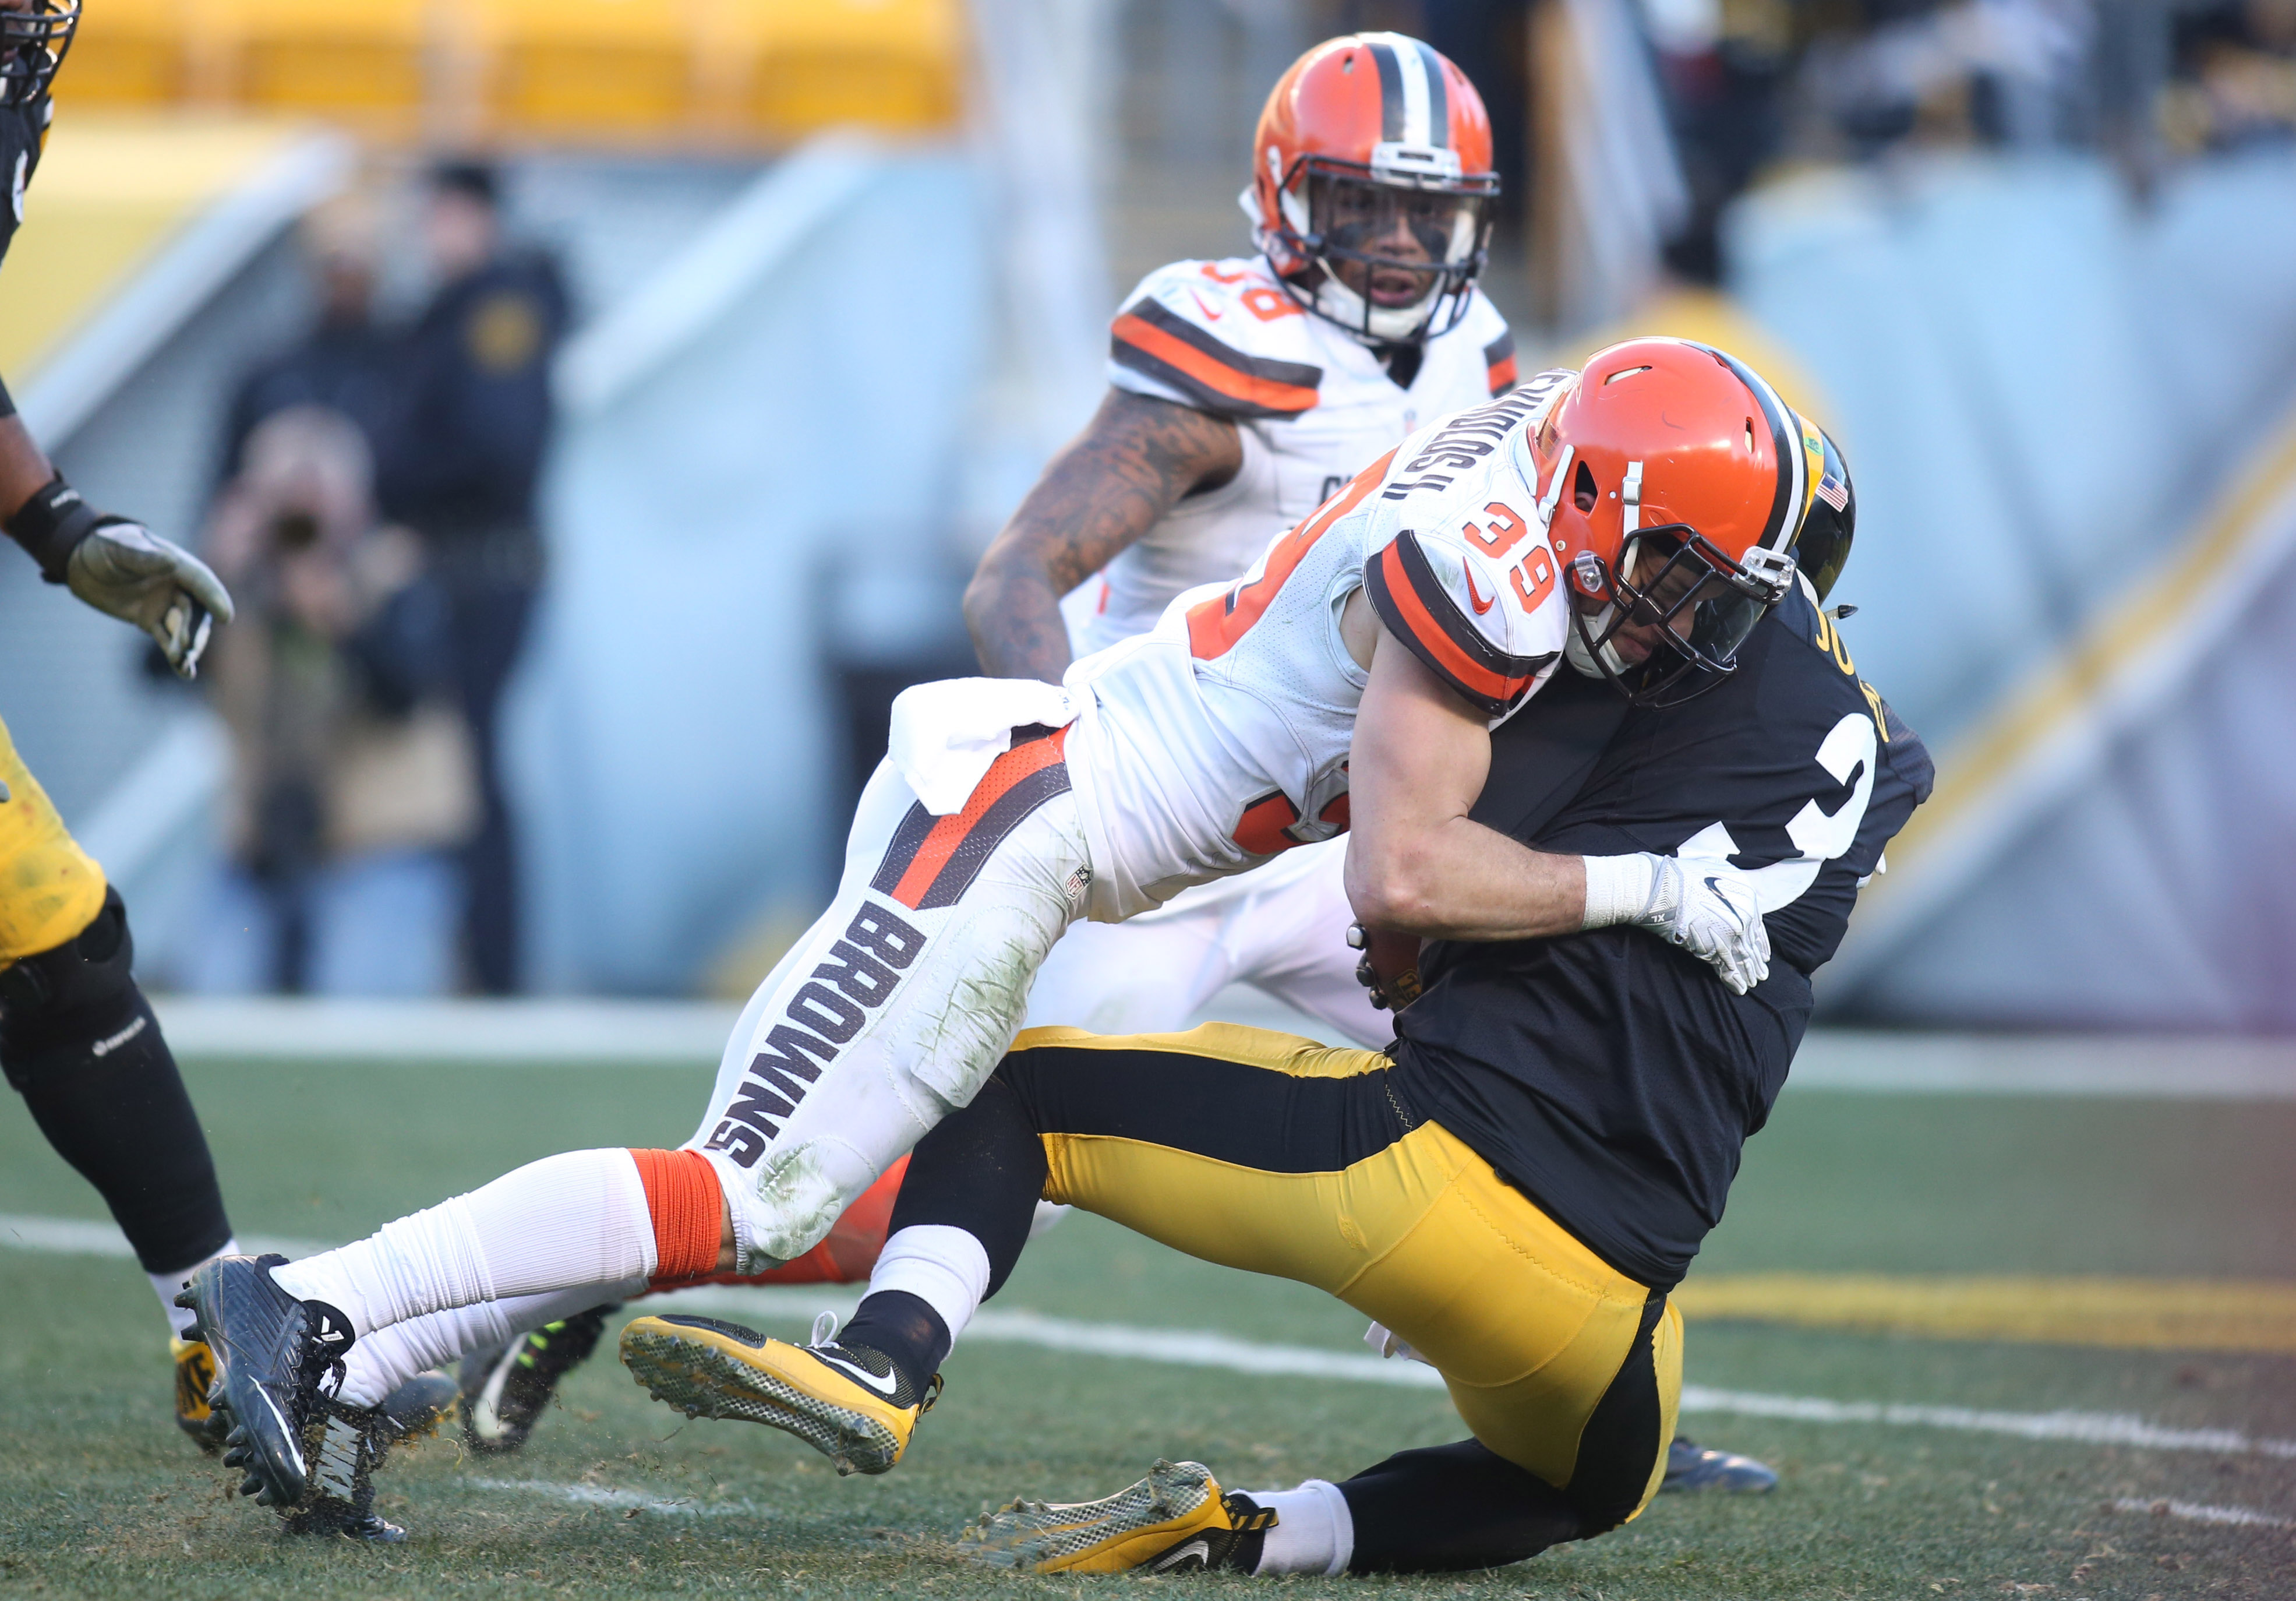 9782358-nfl-cleveland-browns-at-pittsburgh-steelers